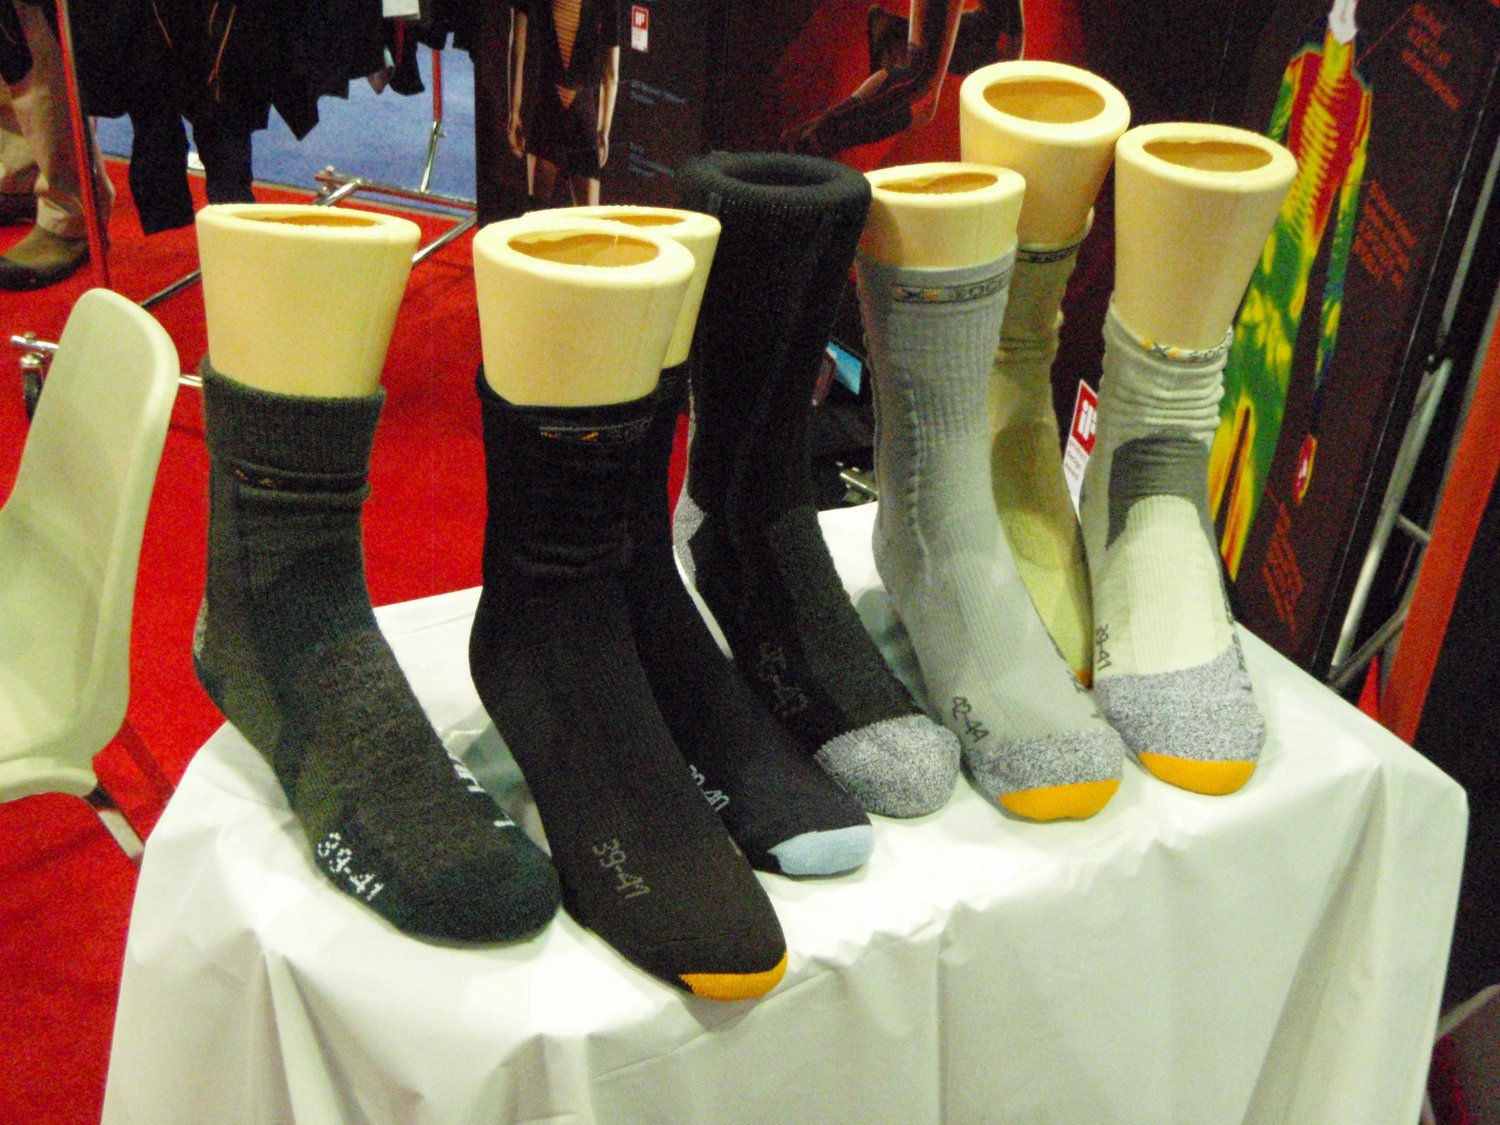 Lowa X Socks 2 <!  :en  >LOWA Tactical Boots Introduces LOWA Desert Mid Tactical Boot at SHOT Show 2009<!  :  >